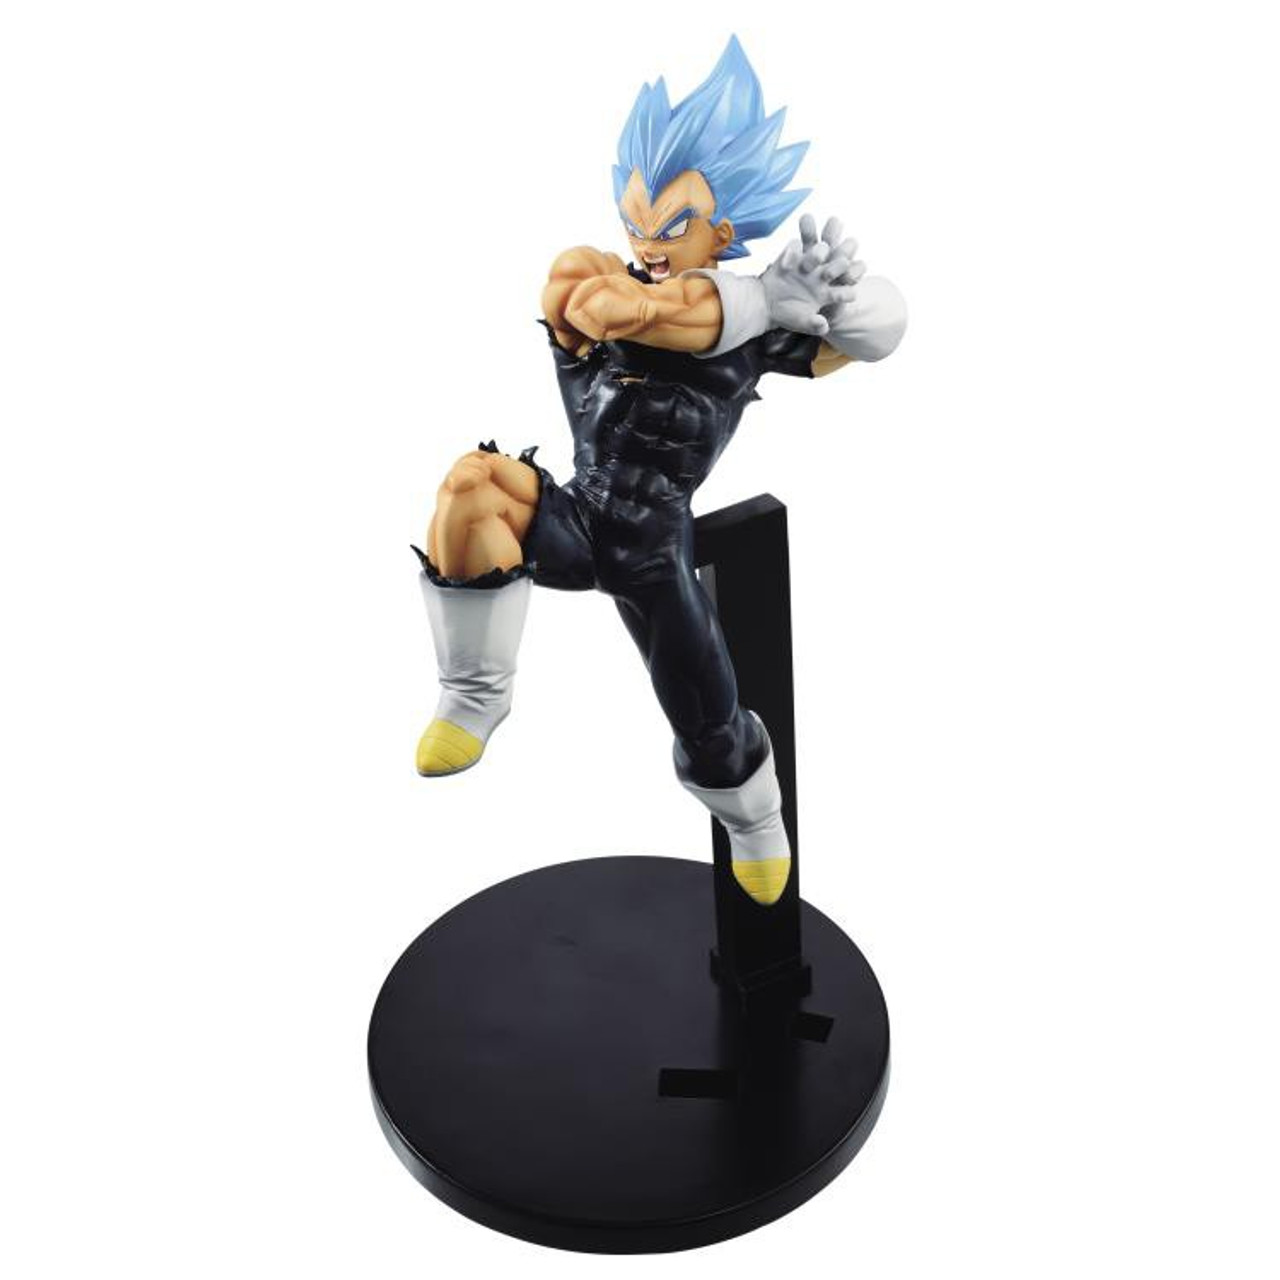 Dragon Ball Super Broly Super Tag Fighters Super Siayan Blue Vegeta 6 7 Inch Collectible Pvc Figure Galick Gun Pre Order Ships August